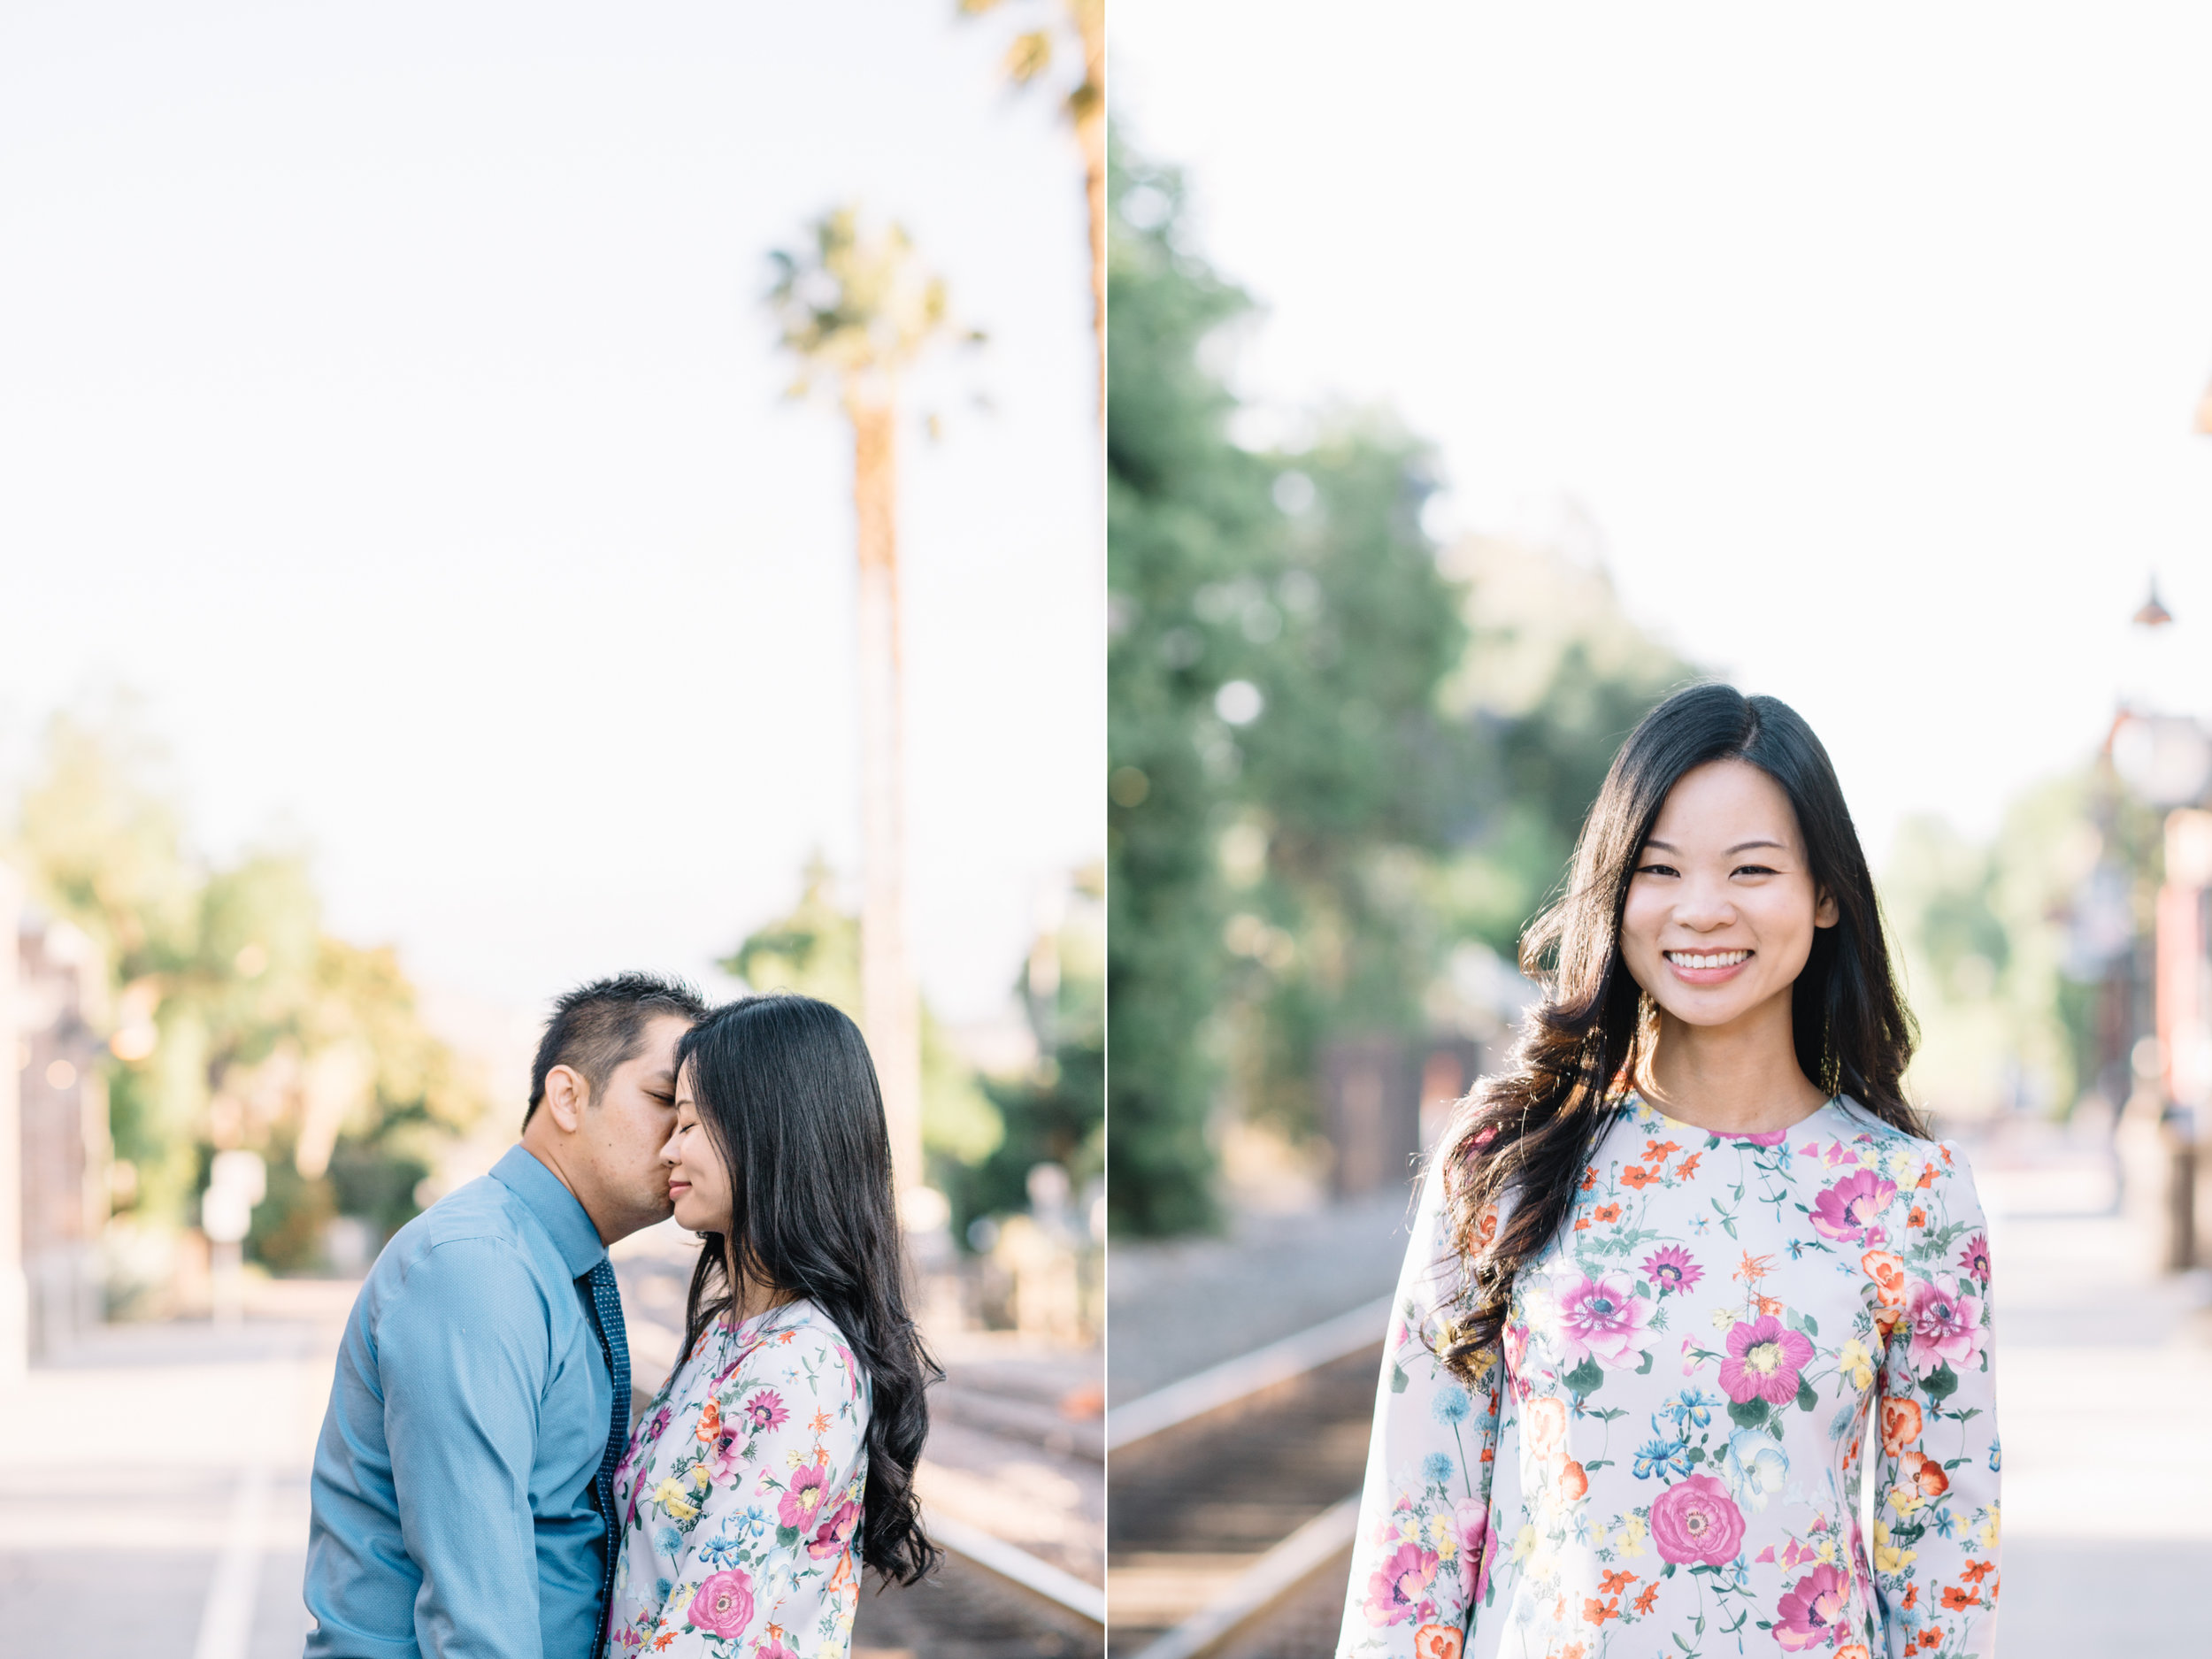 jennifer-jayn-photography-san-juan-capistrano-engagement-session-17.jpg